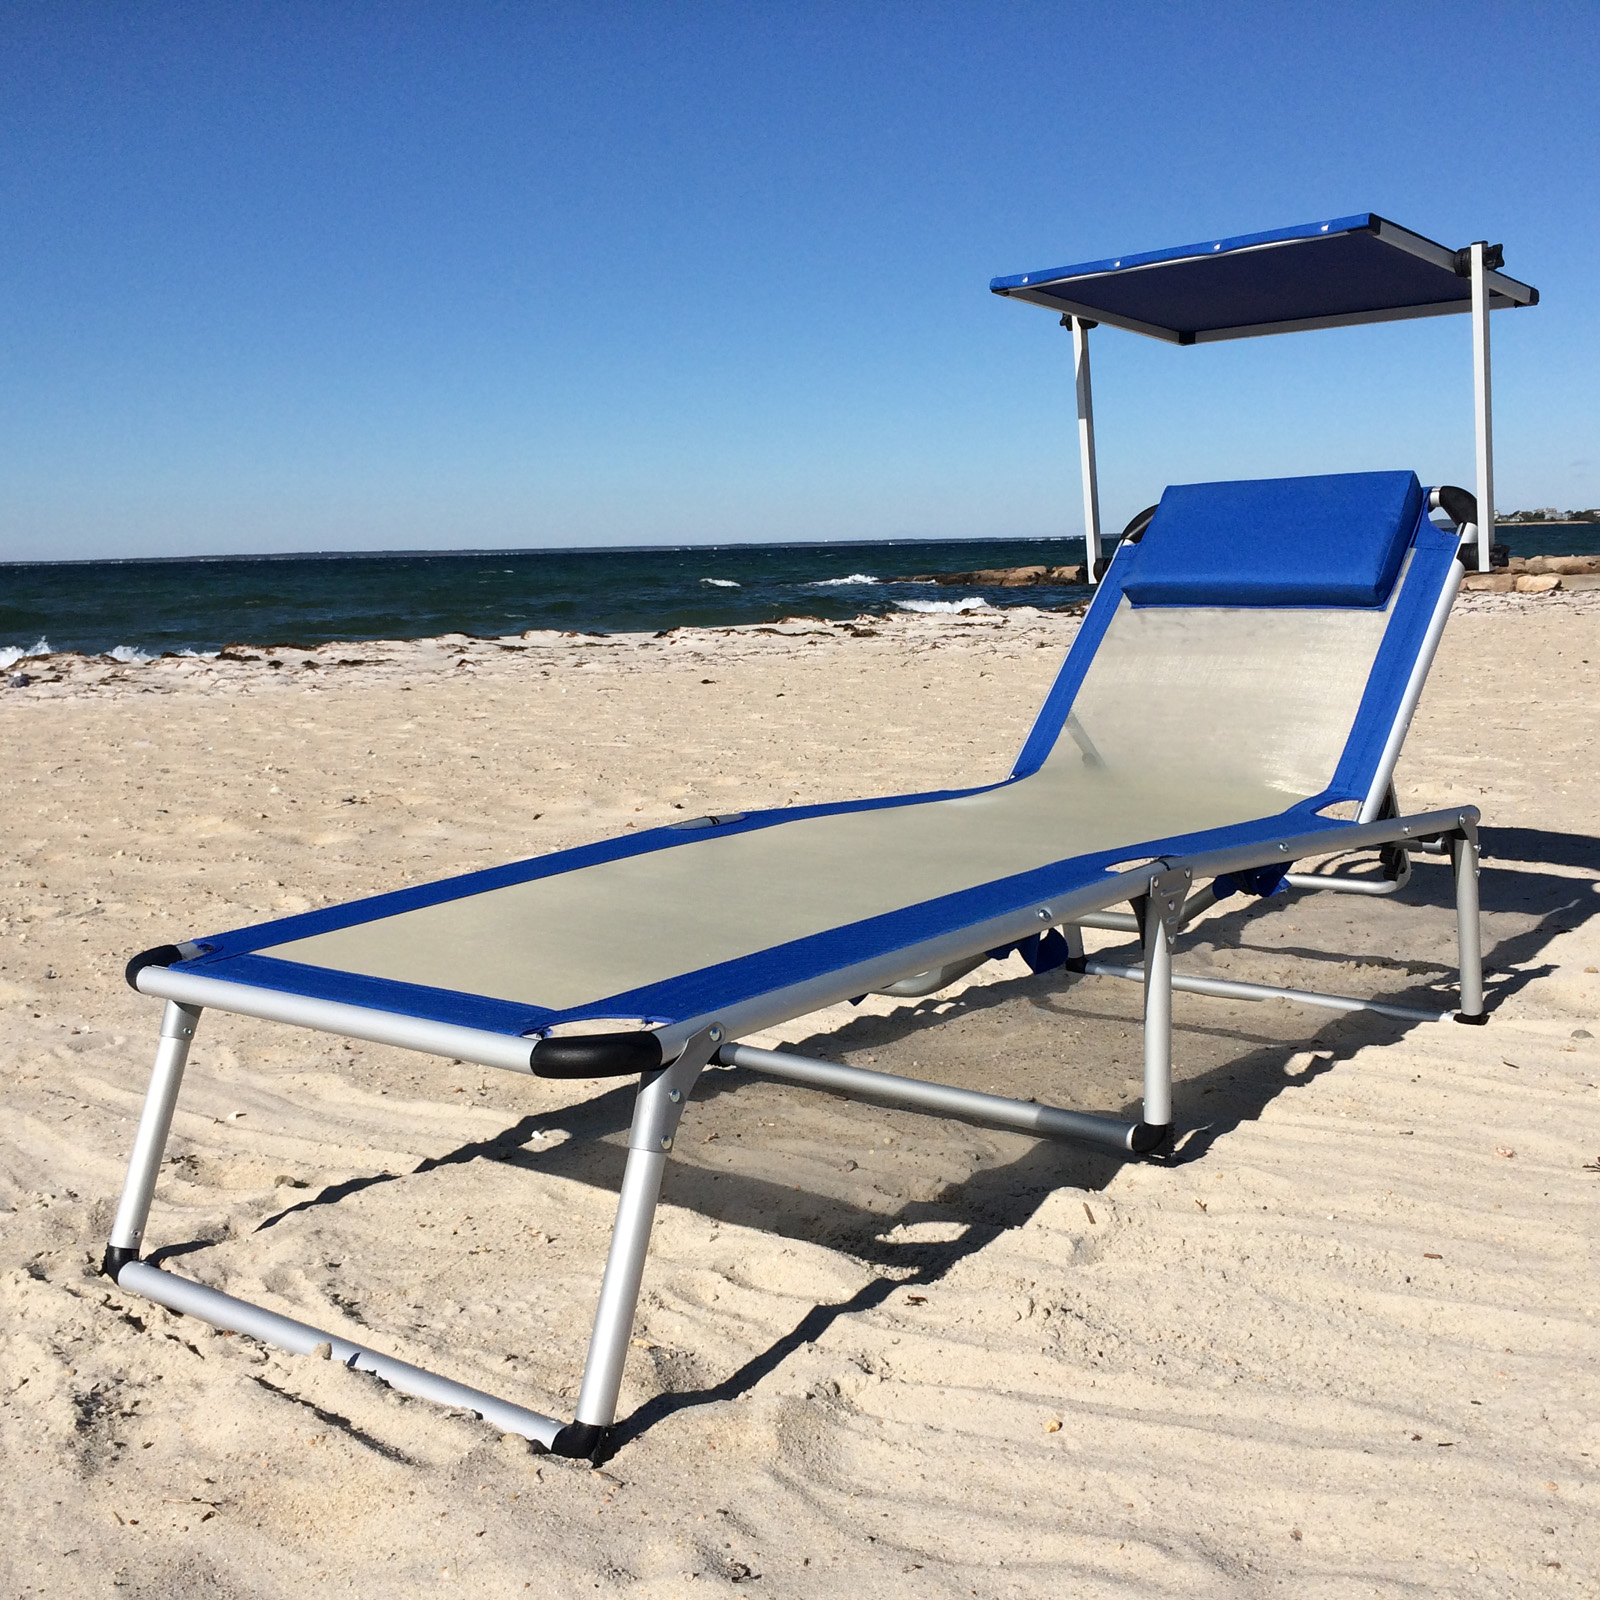 Beach Chaise Lounge Of Cool Lounger Beach Chaise Lounge Do Not Use At Hayneedle